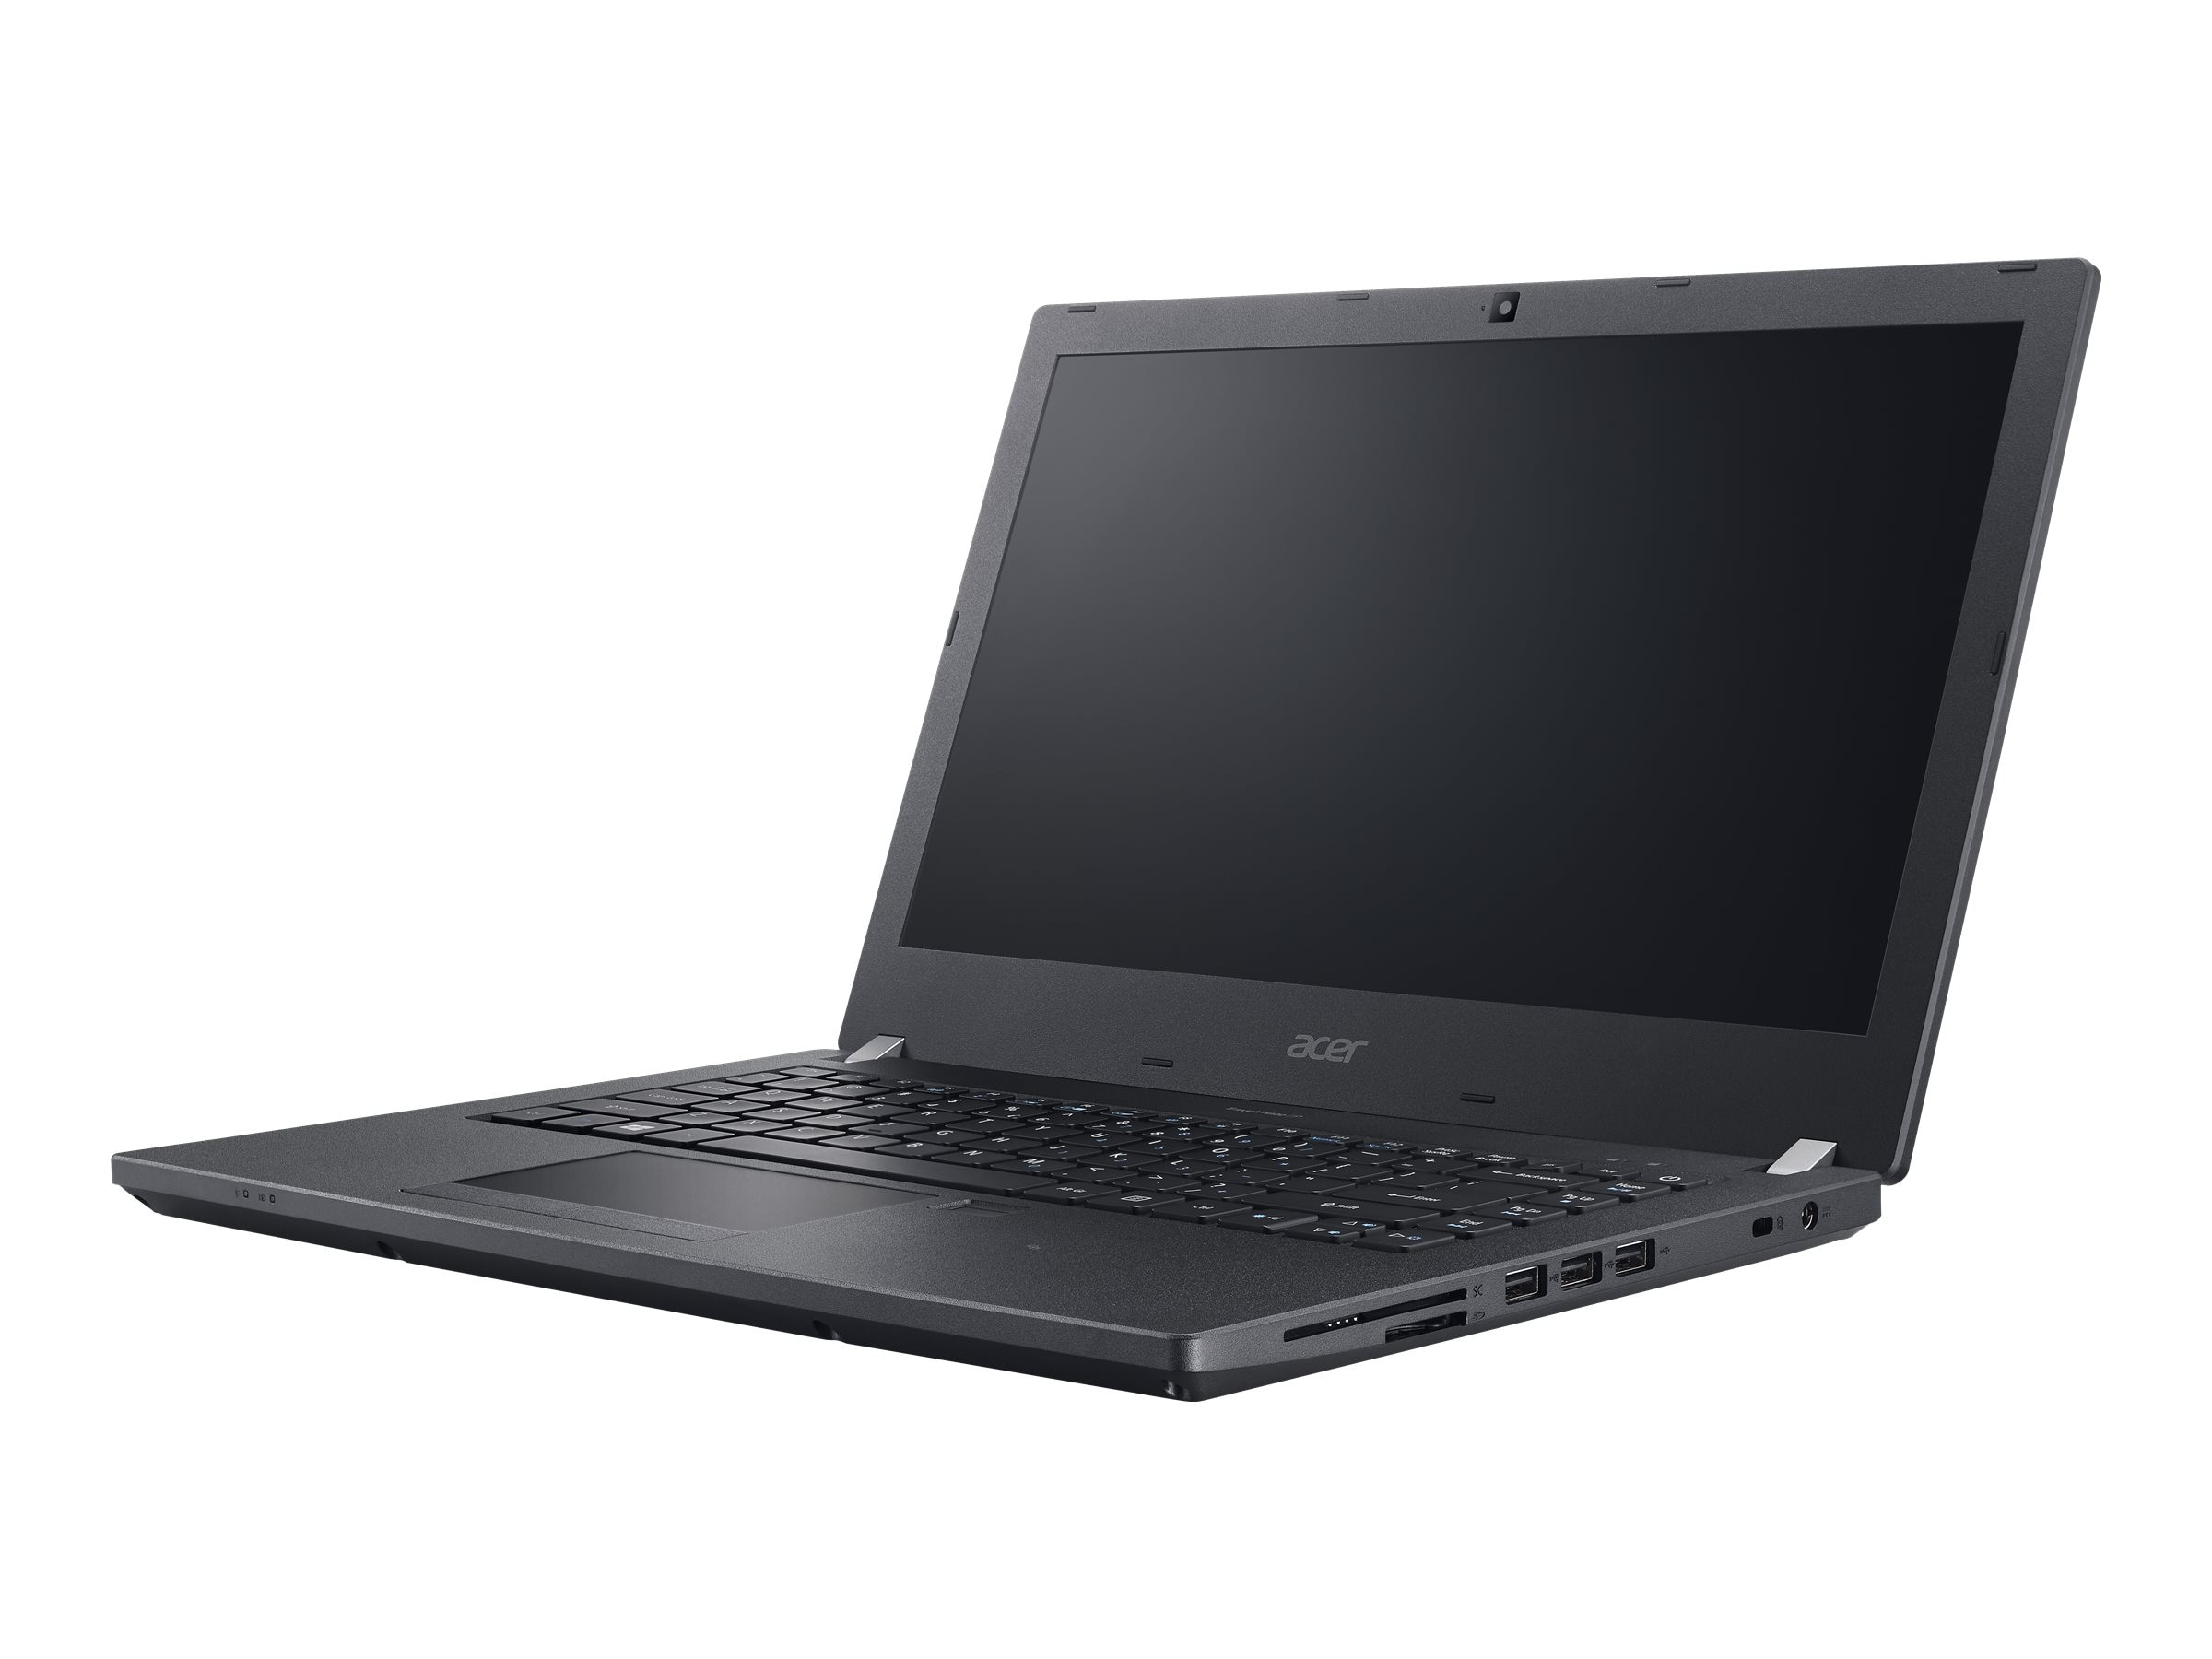 Acer NX.VDKAA.005 Image 1